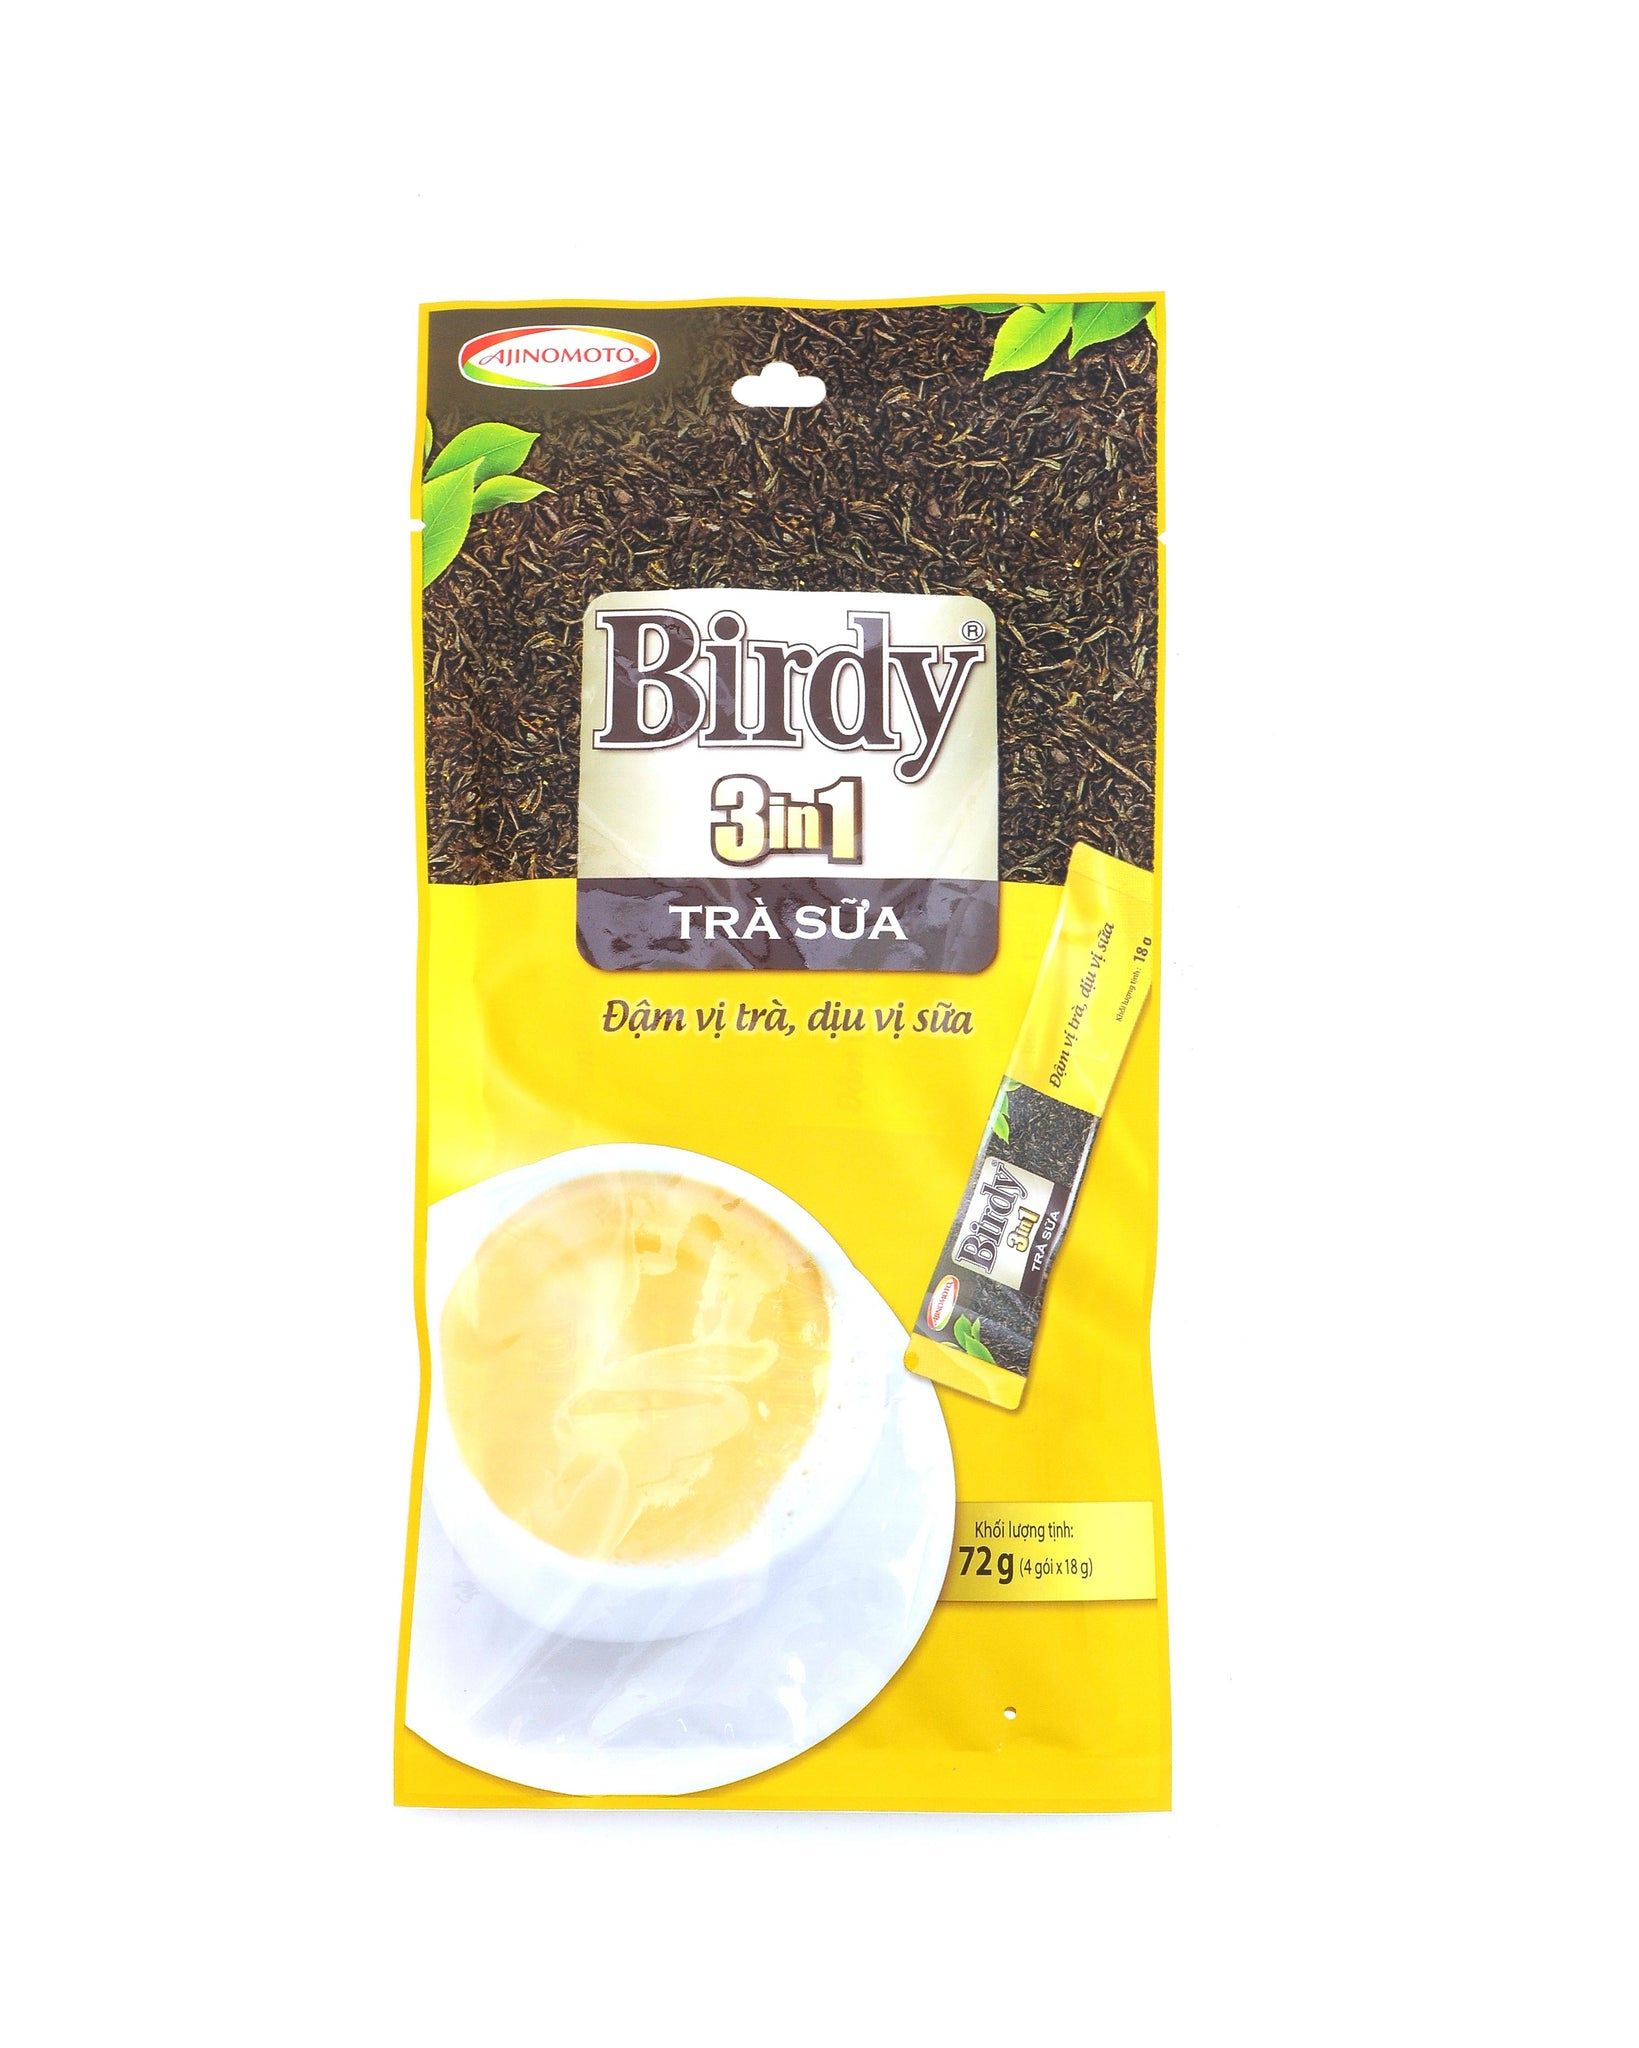 Birdy 3 in 1 Instant Milk Tea - Harmonious Combination of Thai Nguyen Tea and Milk